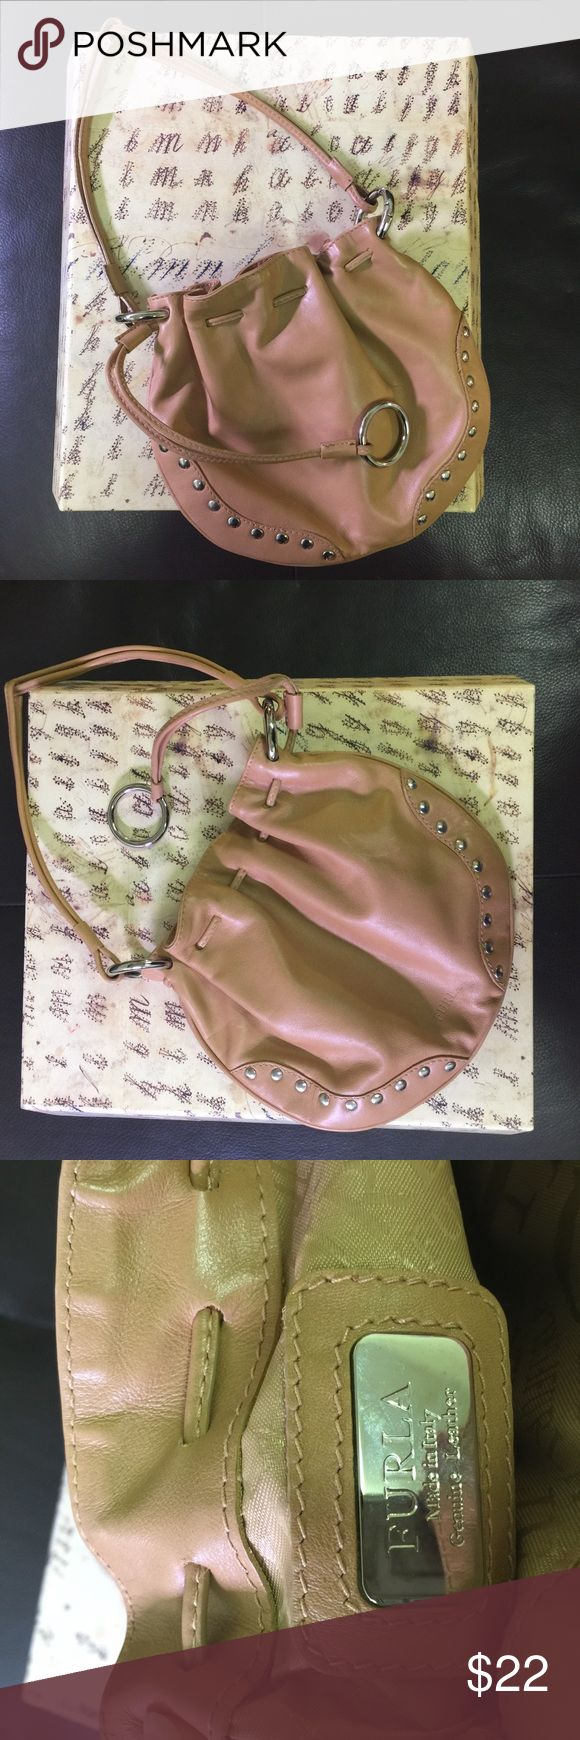 Darling Furla mini bag with studs. This sweet bag can be carried in your tote for a  shopping foray. In EUC with one mark shown in last photo. Reposh. 9x7.5 Furla Bags